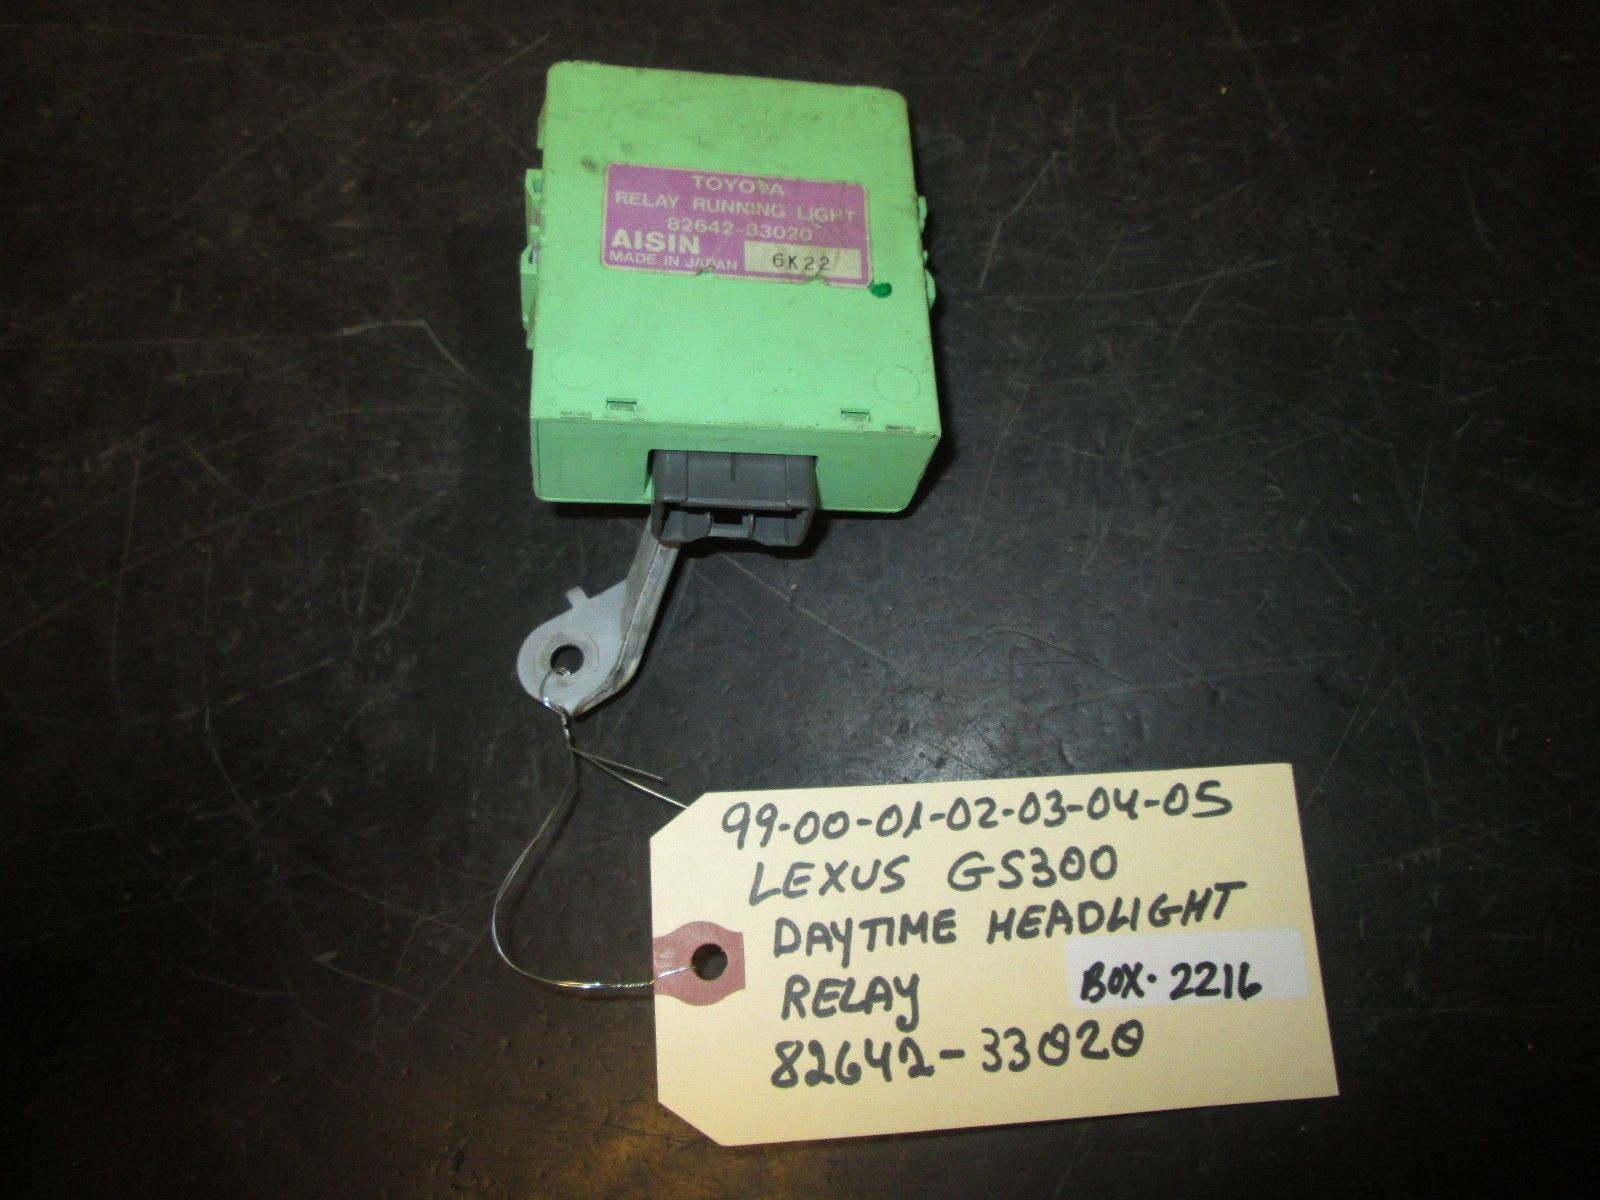 Primary image for 99-05 LEXUS GS300 DAYTIME HEADLIGHT RELAY #82642-33020 *See item*